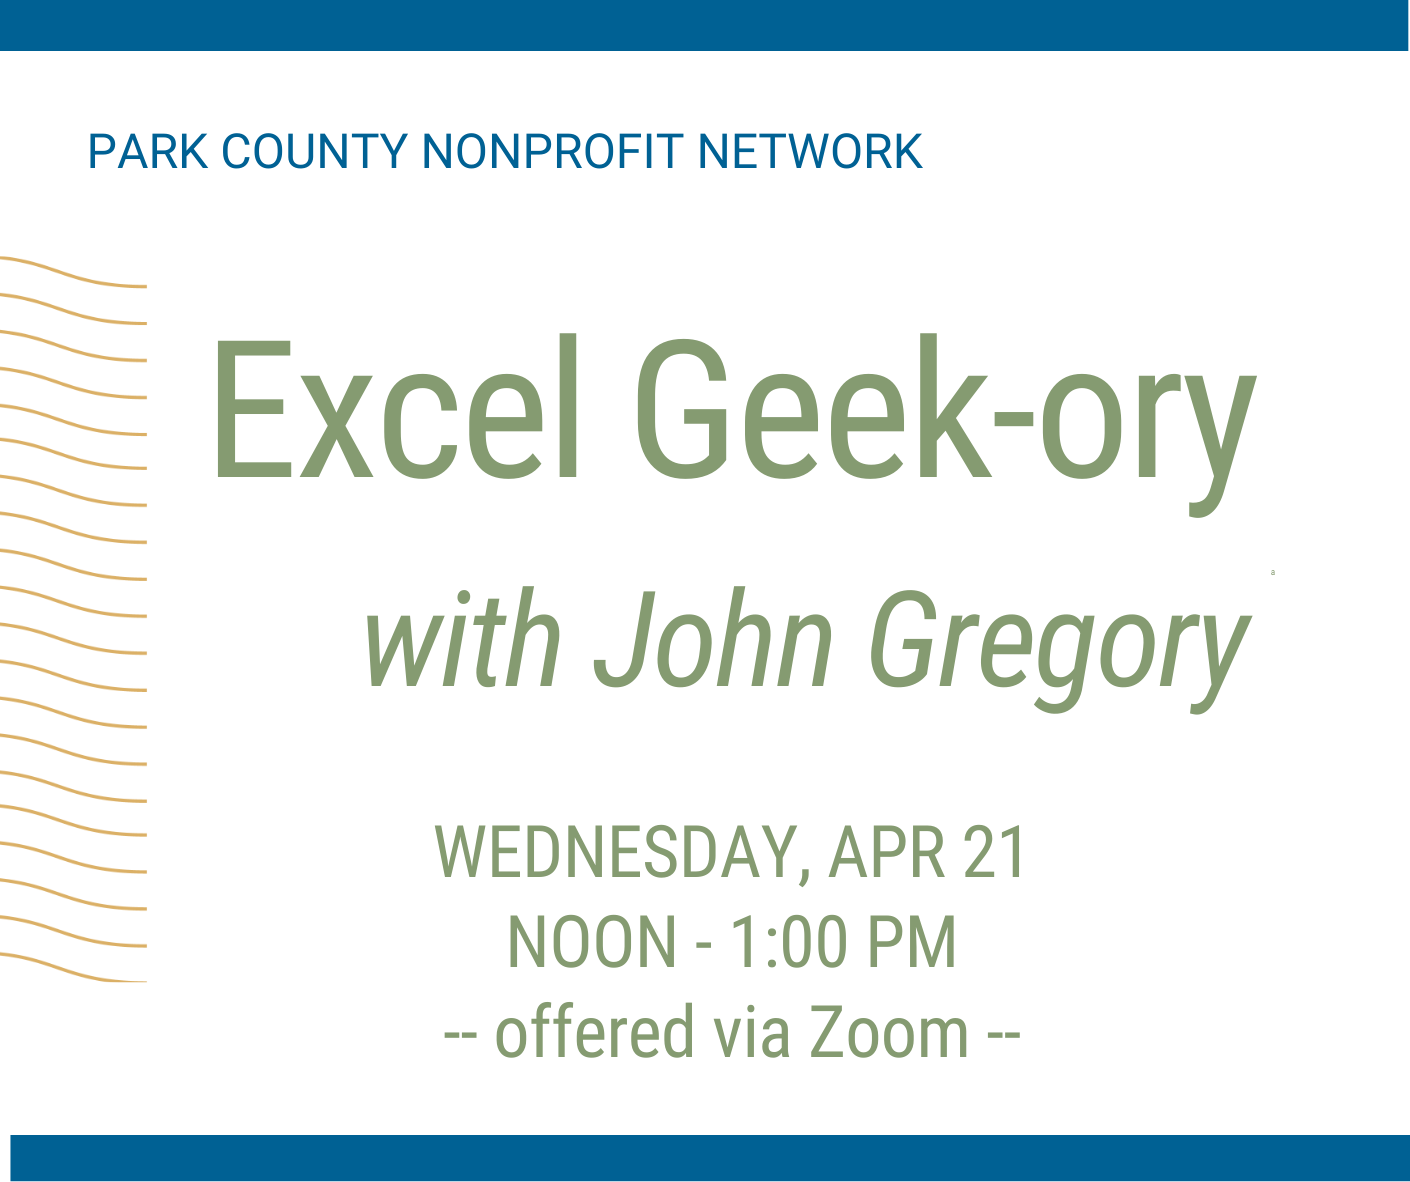 Excel Geek-ory with Gregory